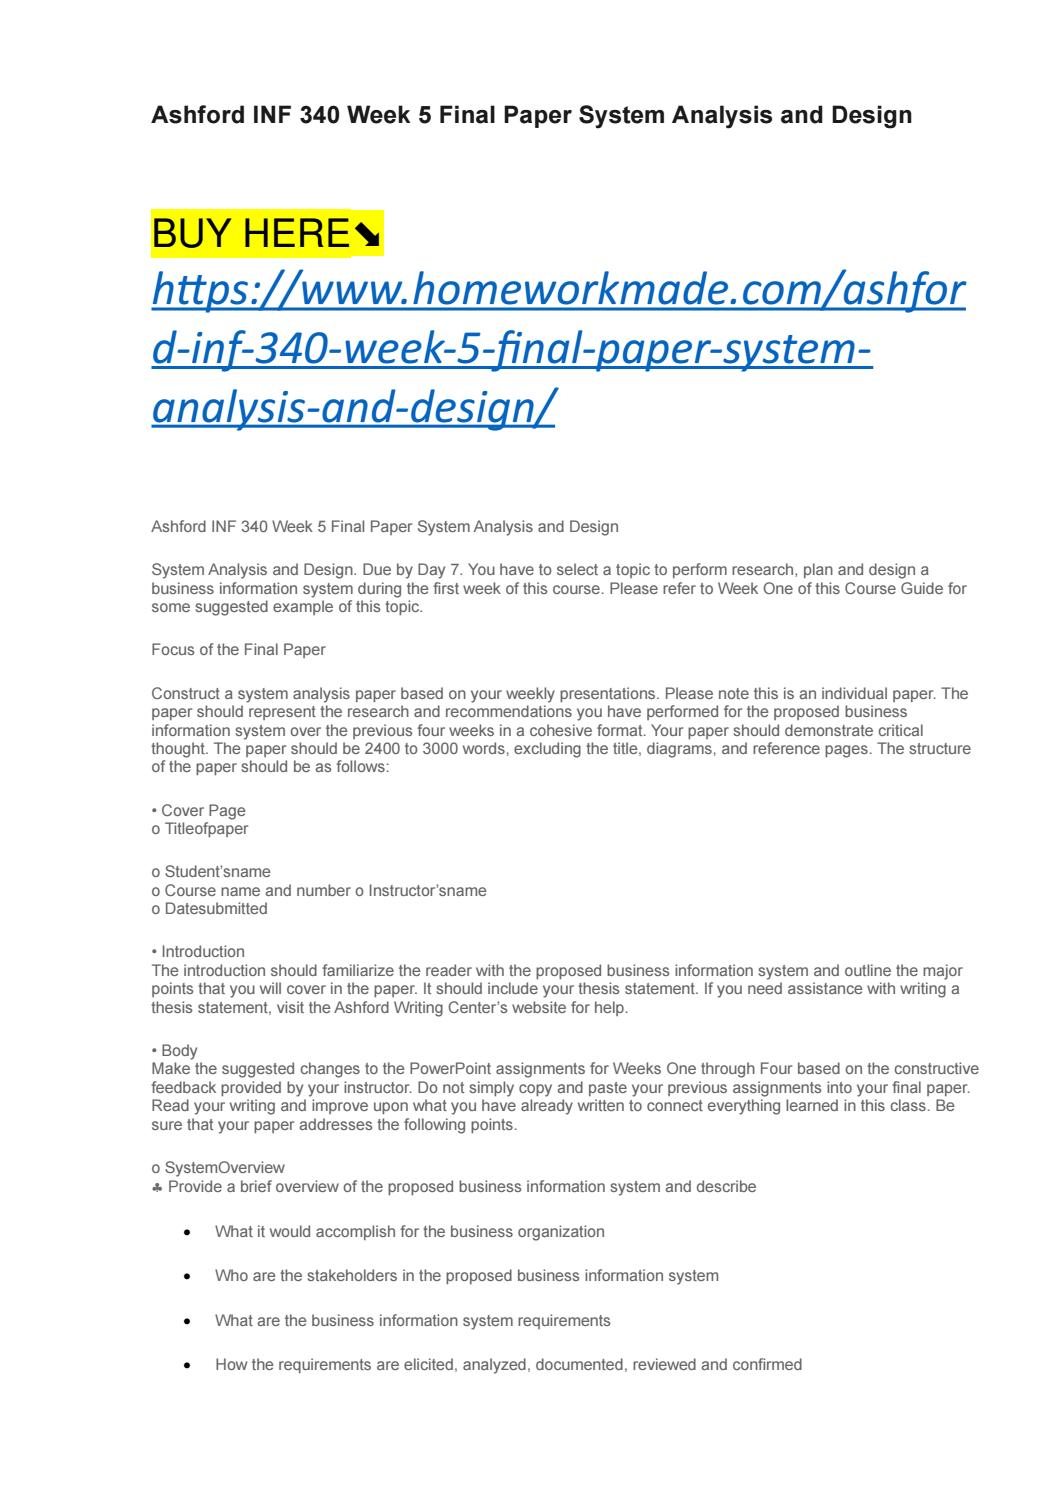 Ashford Inf 340 Week 5 Final Paper System Analysis And Design By Homeworkbox Issuu